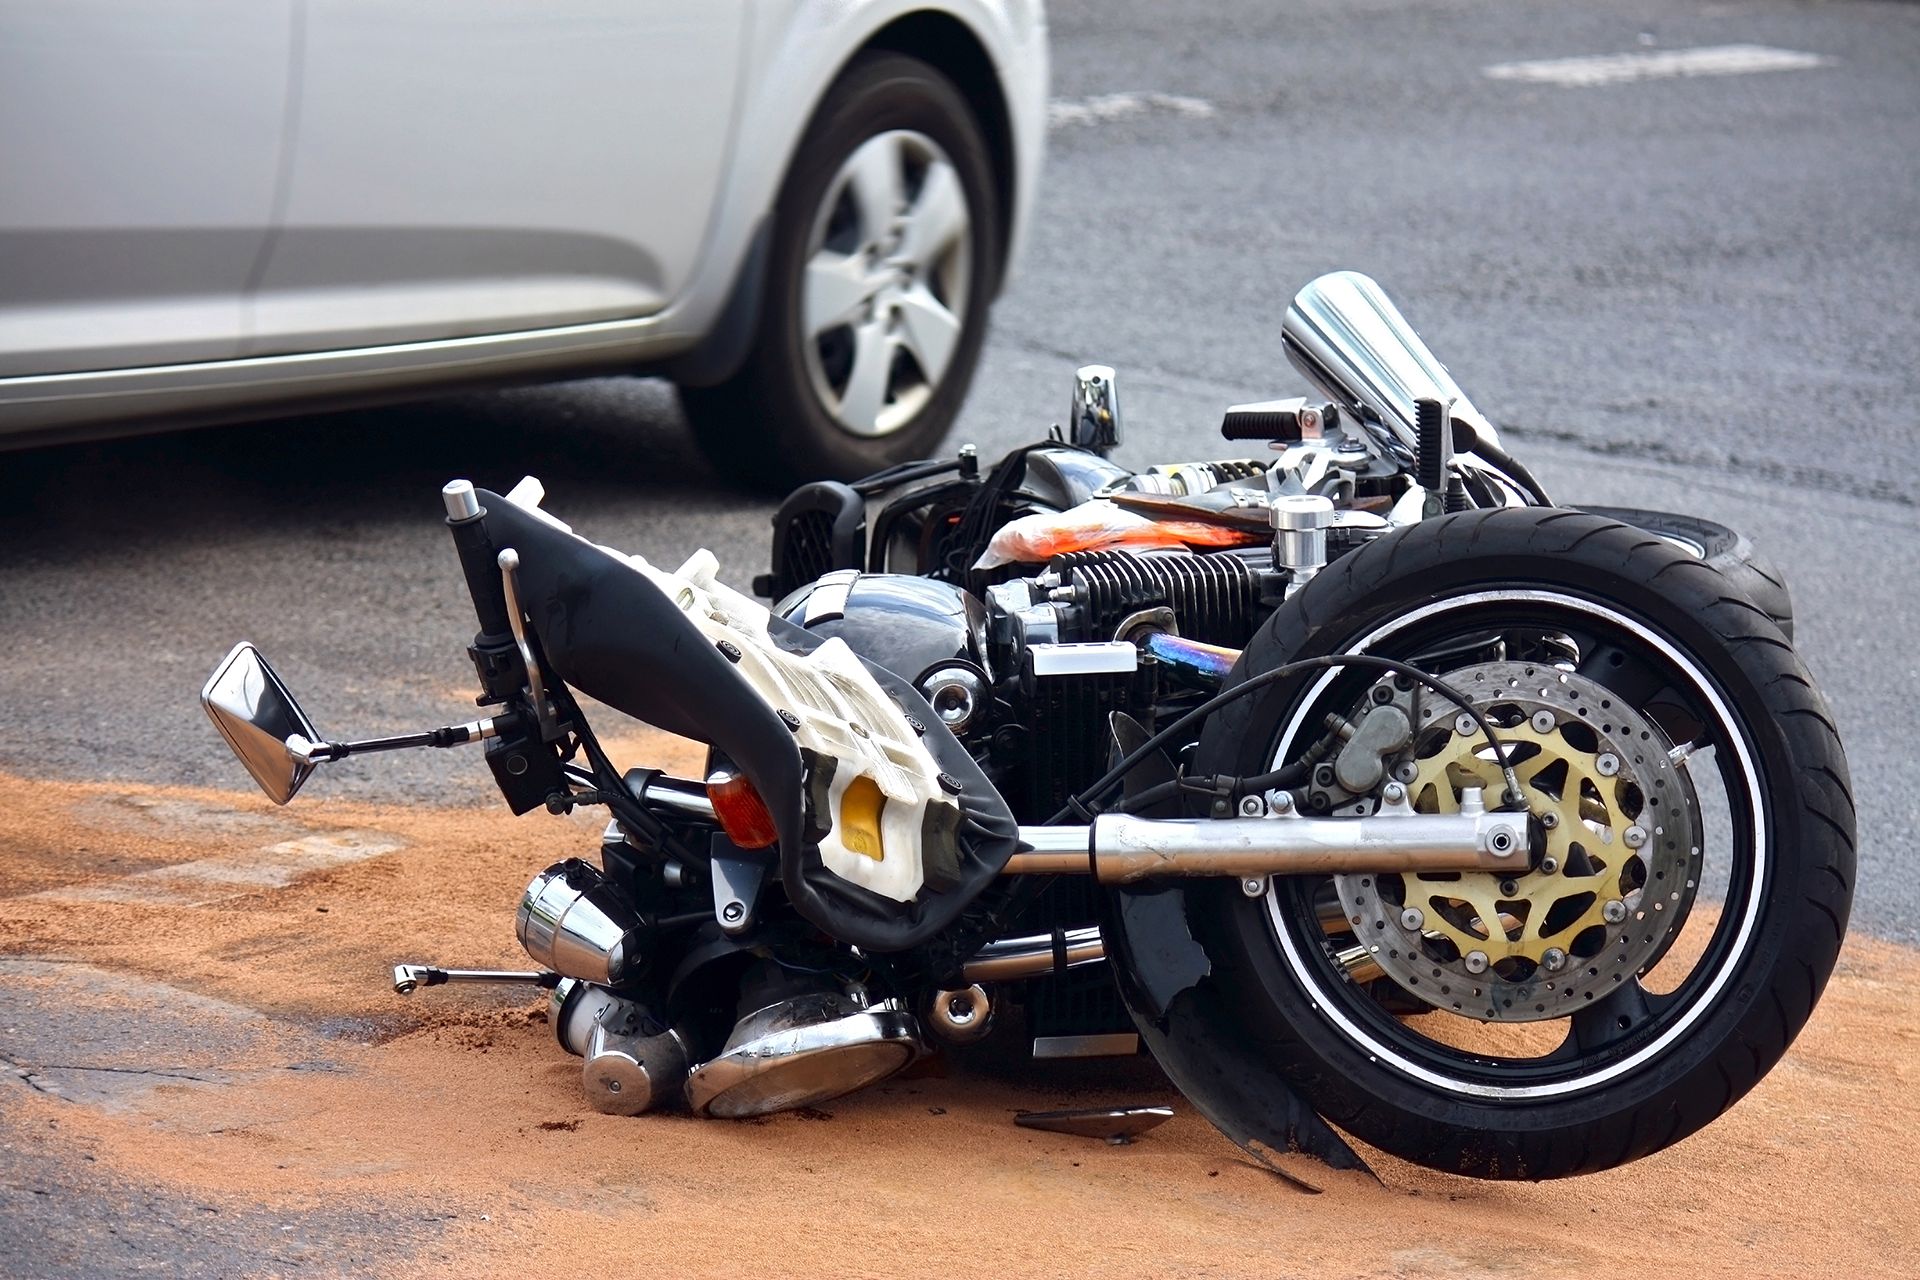 Photo of motorcycle laying on the road after an accident